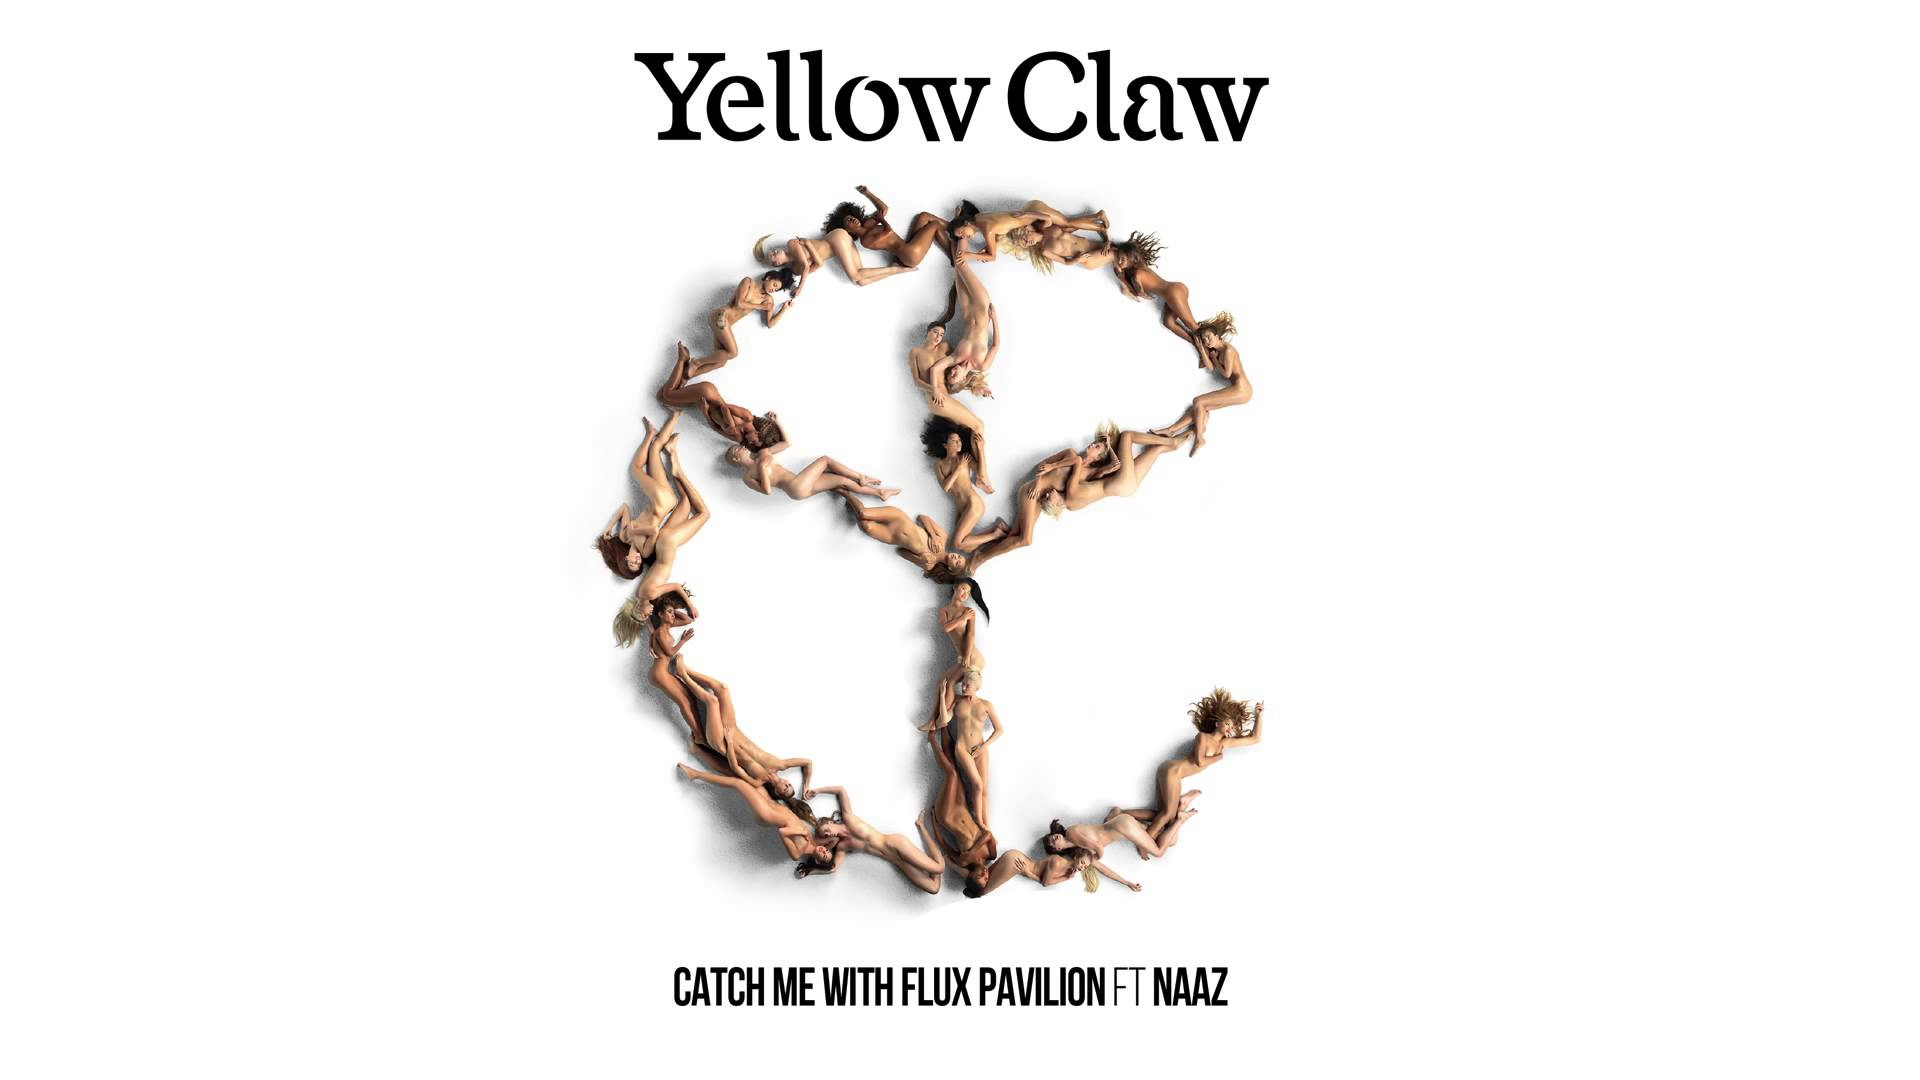 Yellow Claw & Flux Pavilion feat. Naaz - Catch Me v3